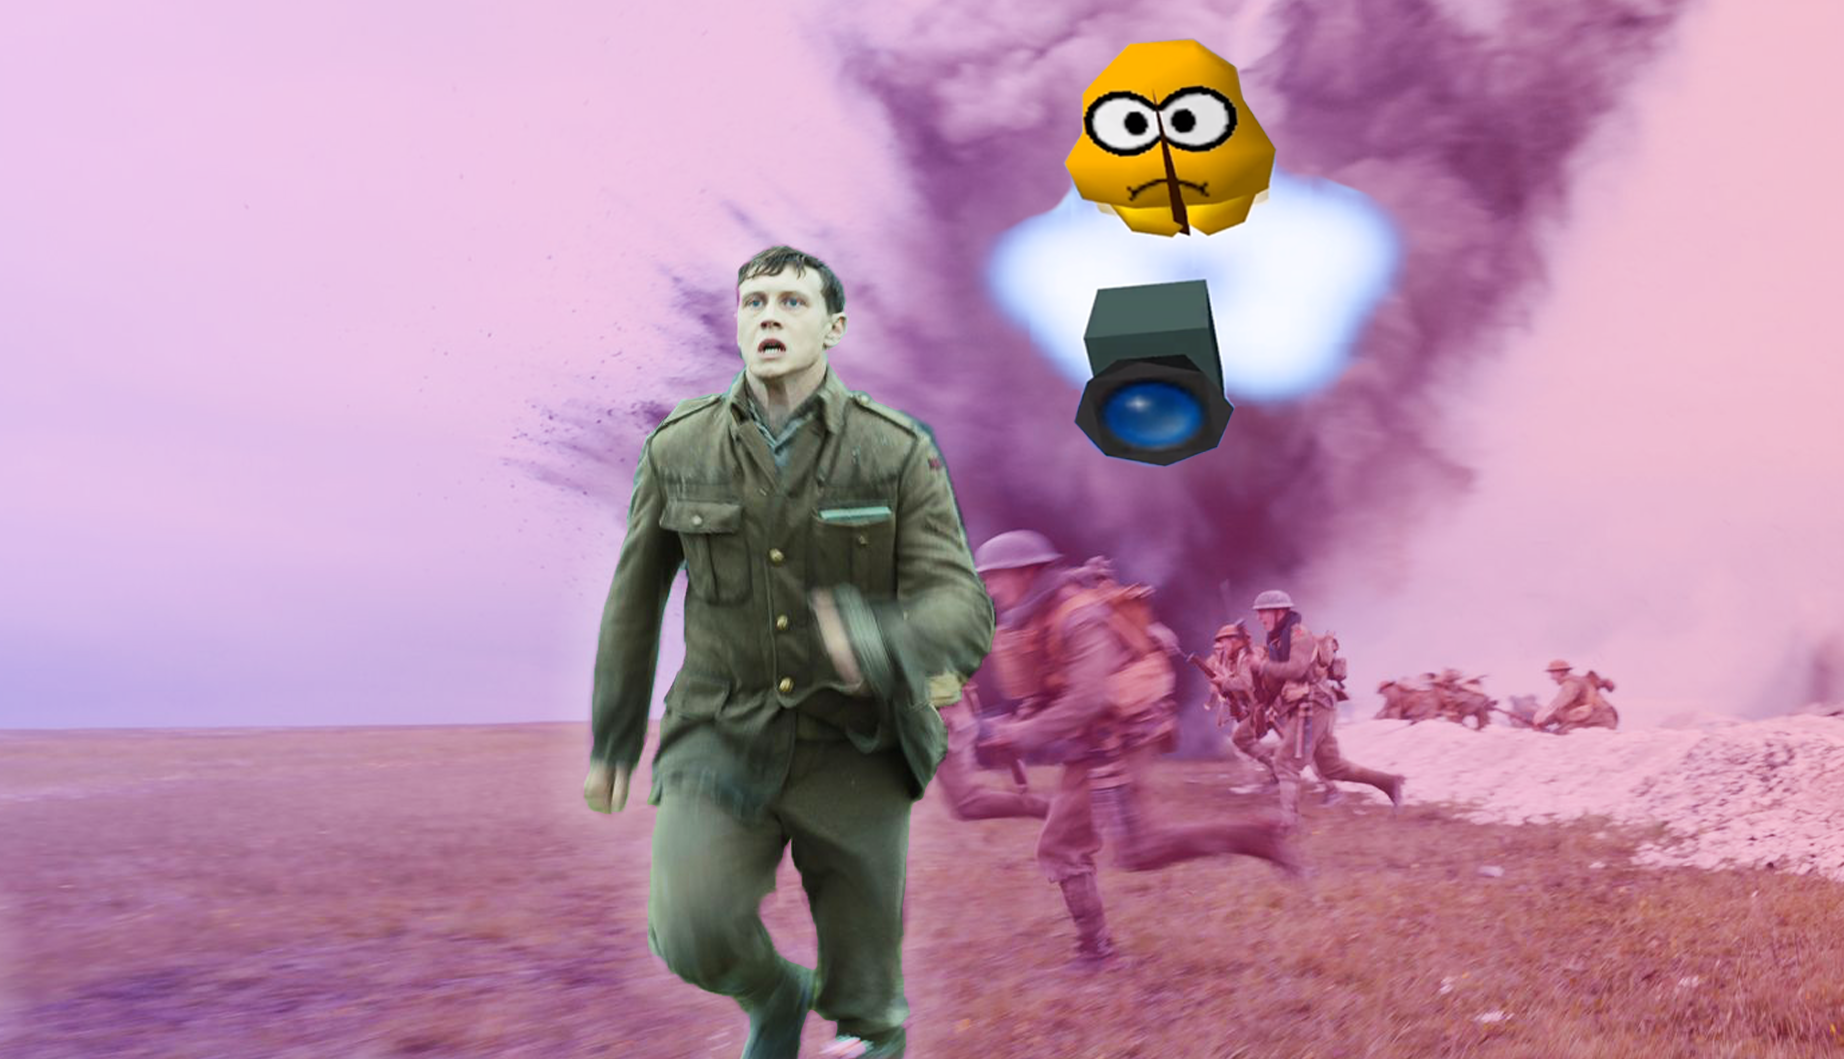 In a freeze frame from the film 1917, a World War I soldier runs toward the camera while the video game character Lakitu follows behind him with a video camera. There is a large explosion in the background behind them and other soldier running directly left.